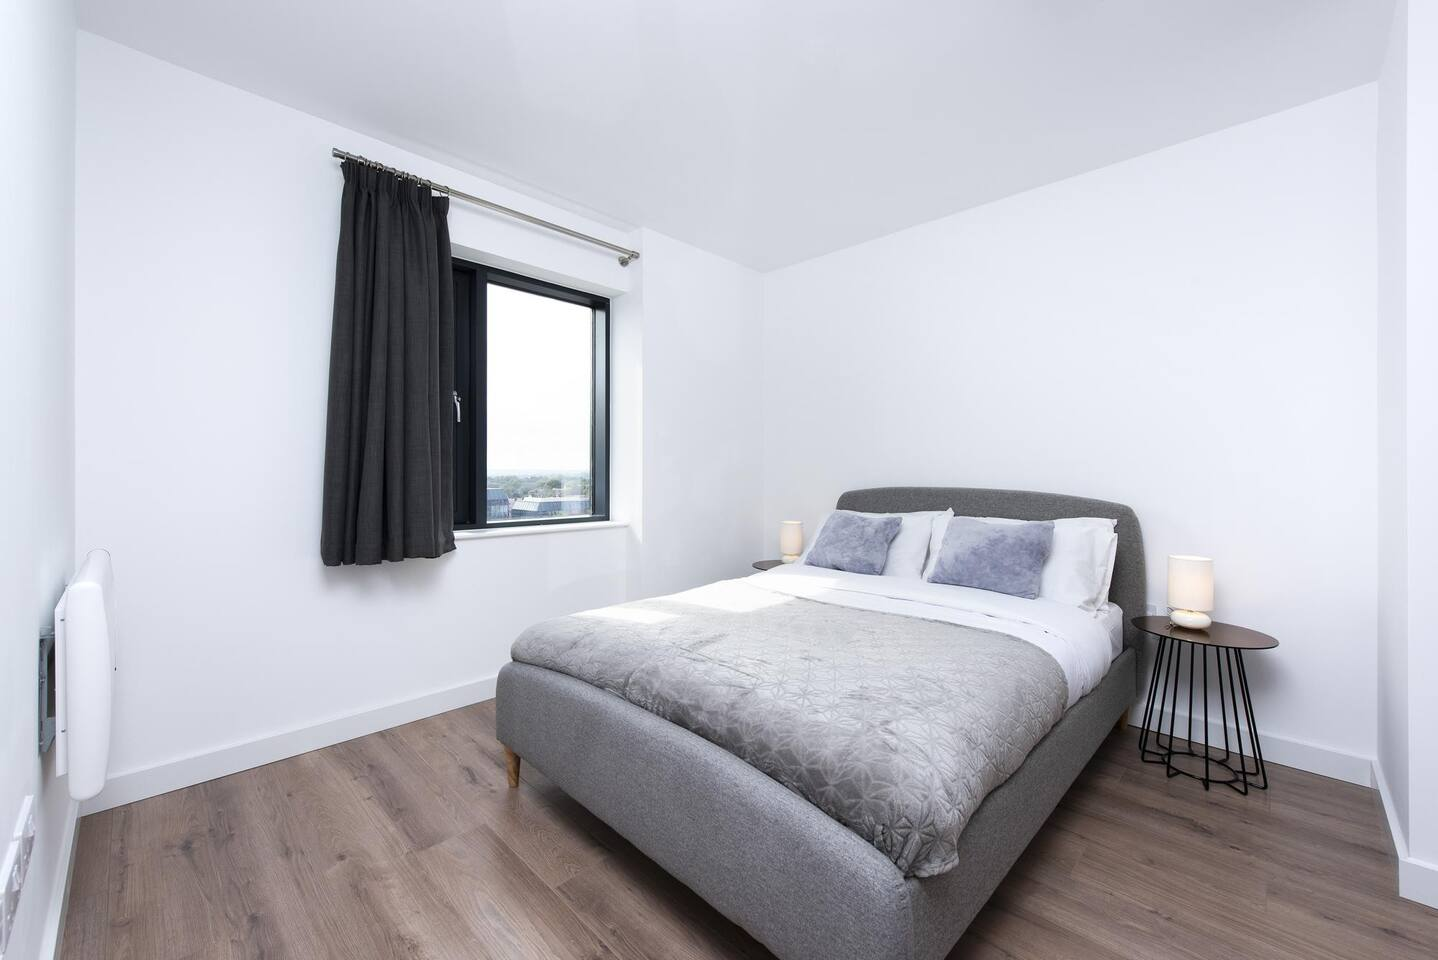 Bedroom at The Lansdowne Apartments, Ladywood, Birmingham - Citybase Apartments